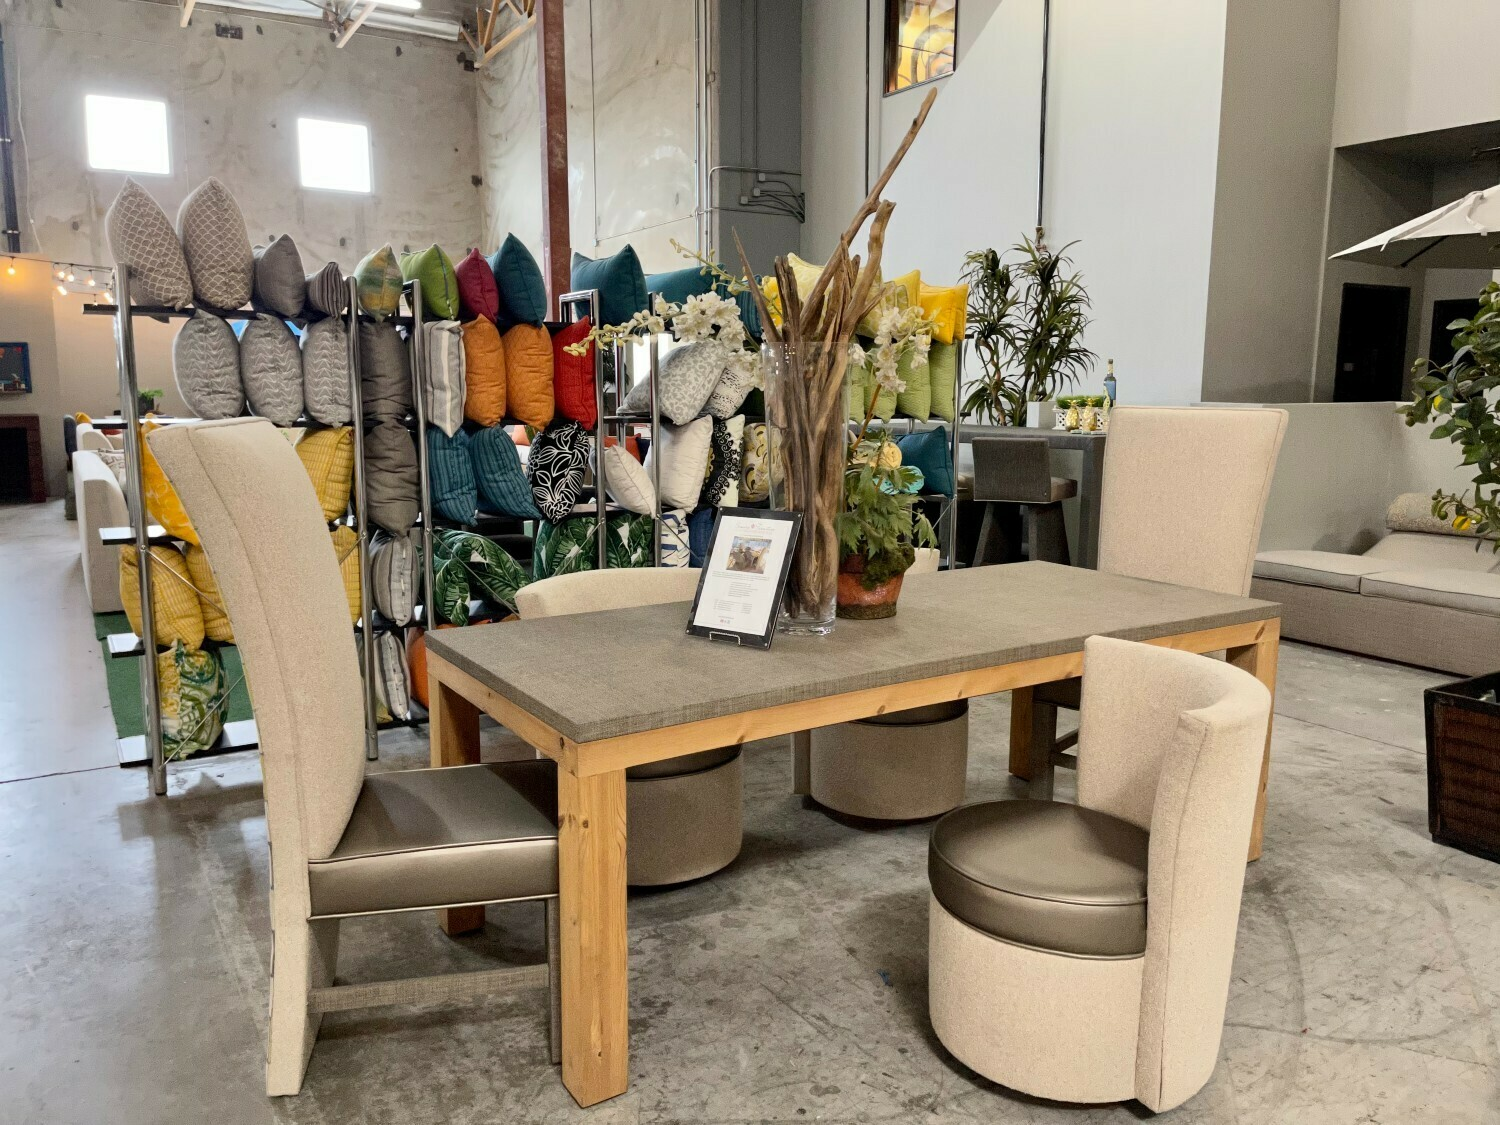 Cool Calm Composed Dining Set-Samples